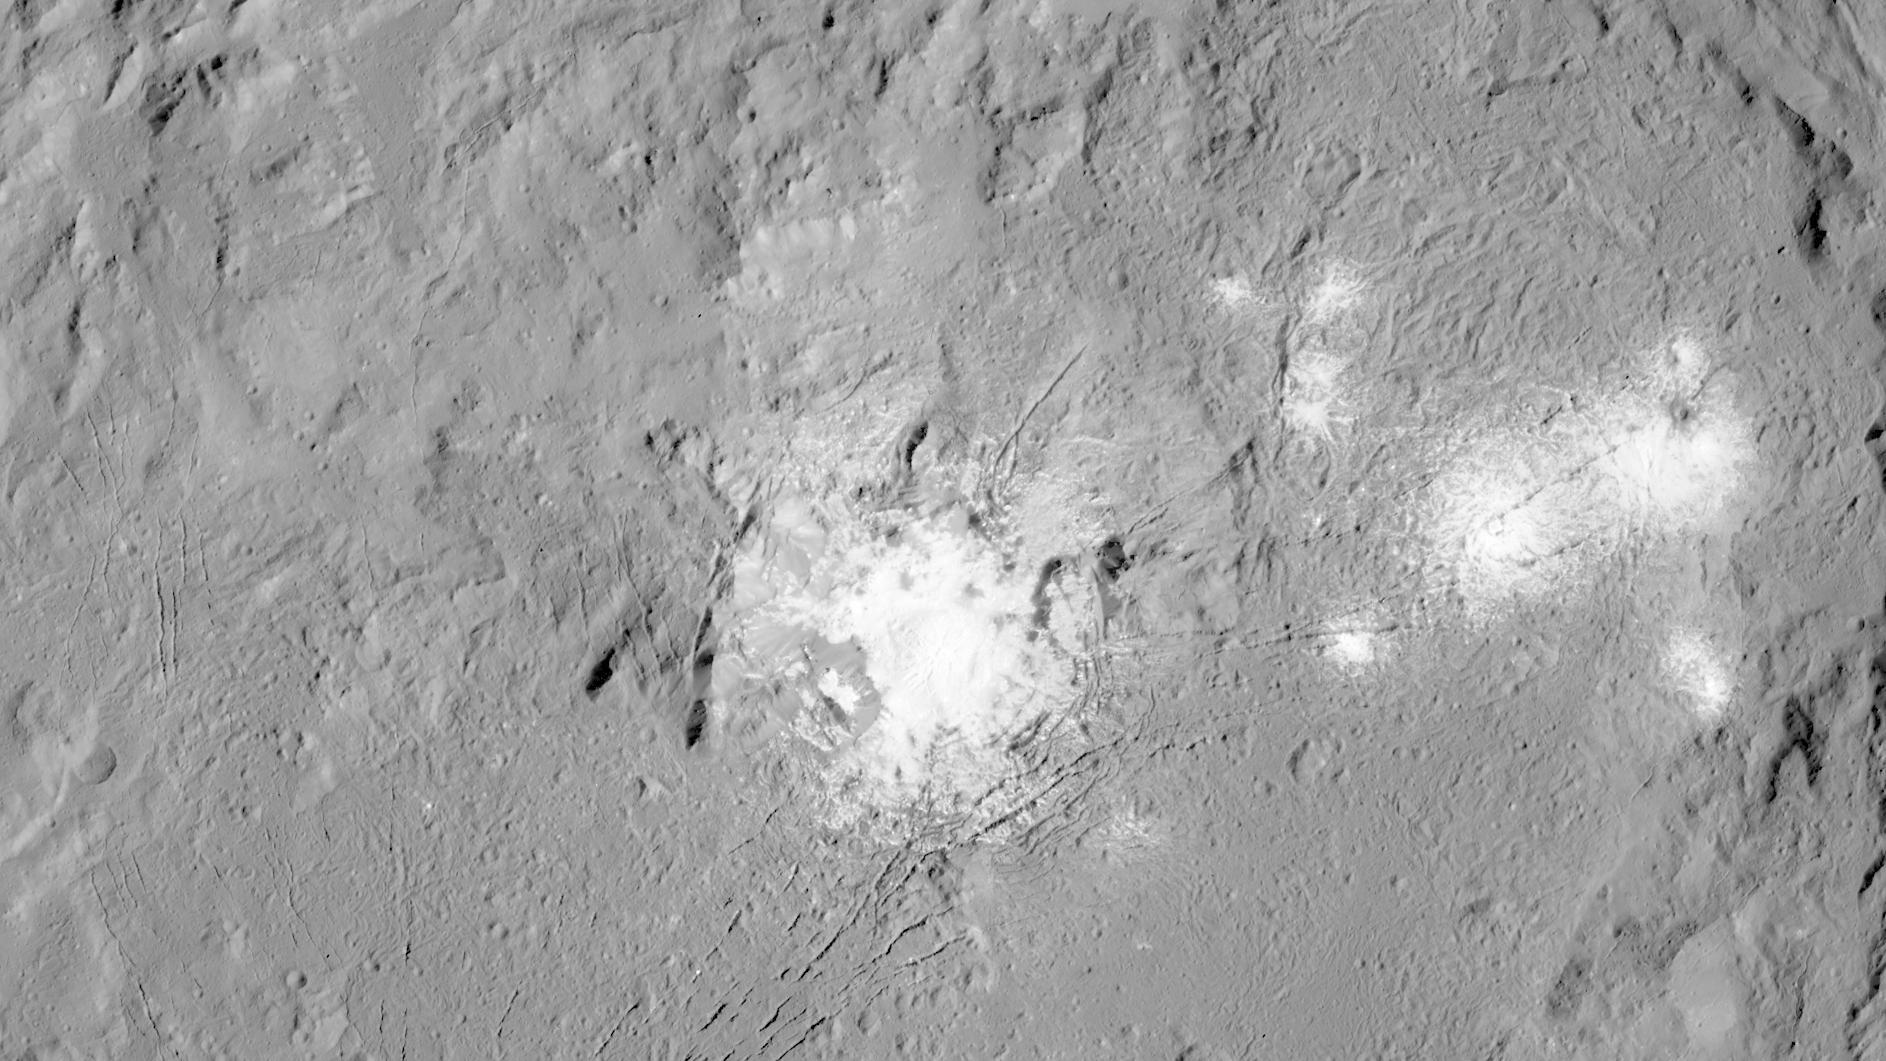 Cracks and bright spots in the Occator crater